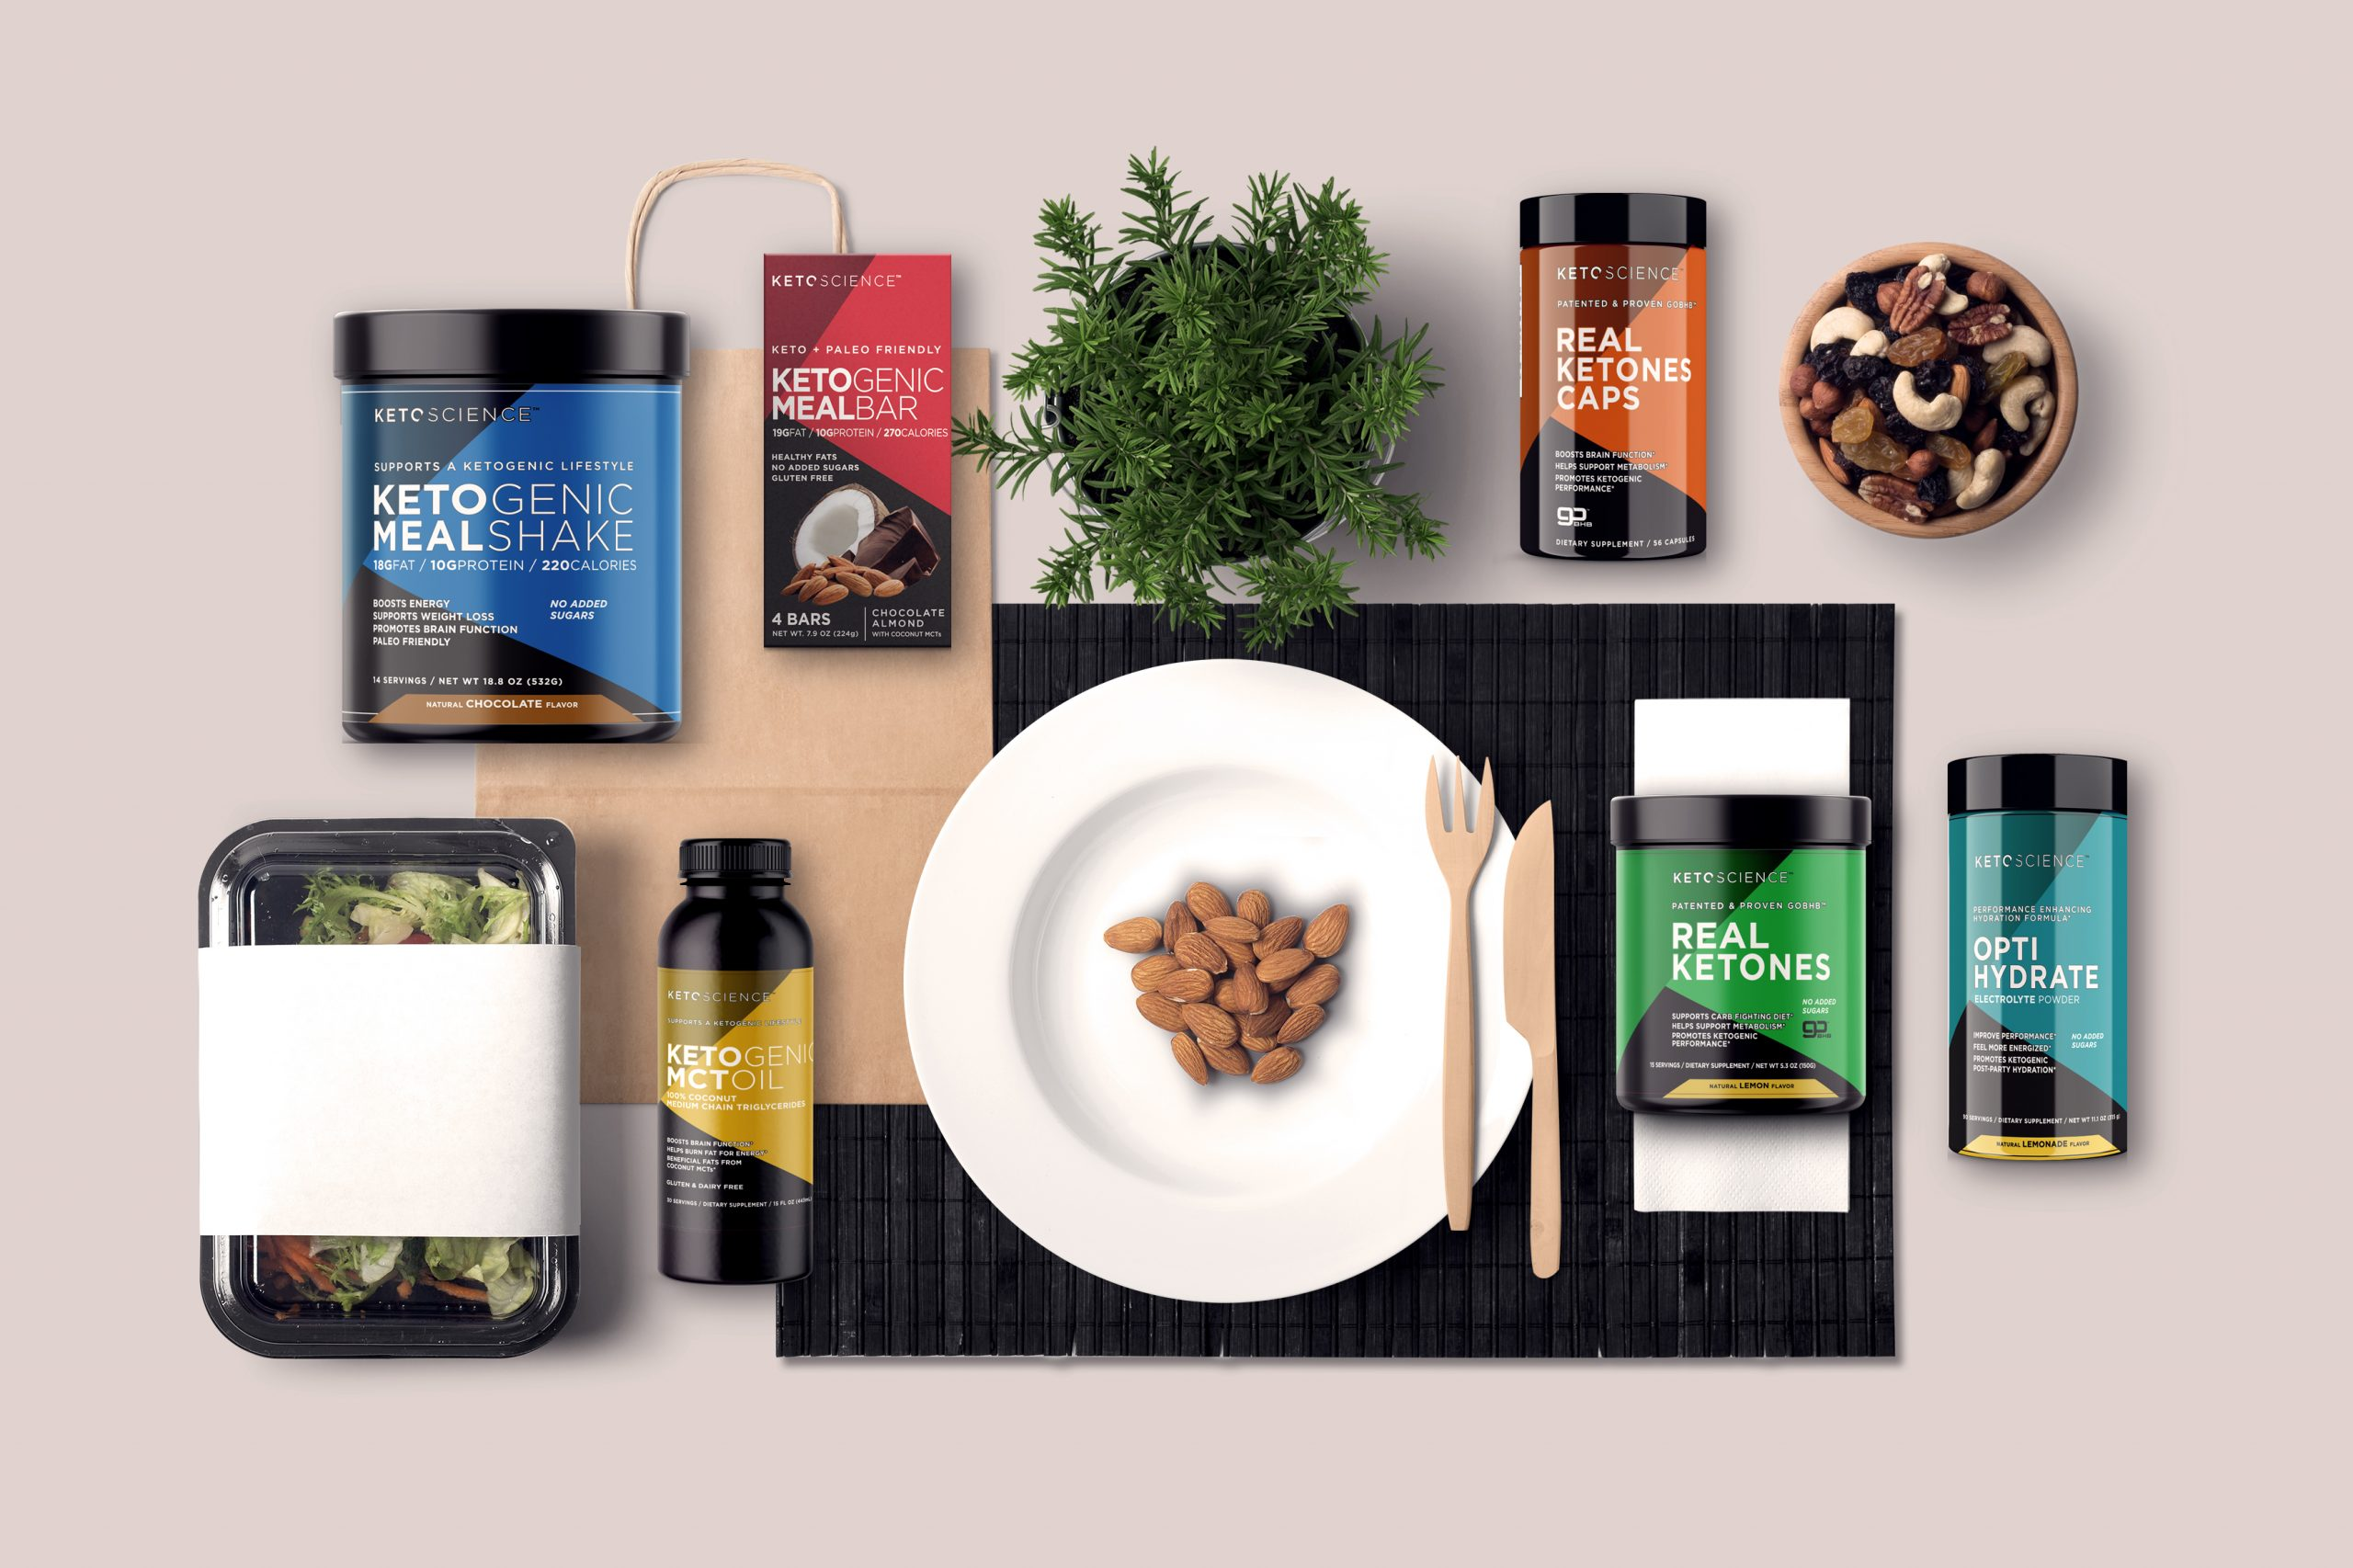 Keto Science product image for the website highlighting different product offerings.